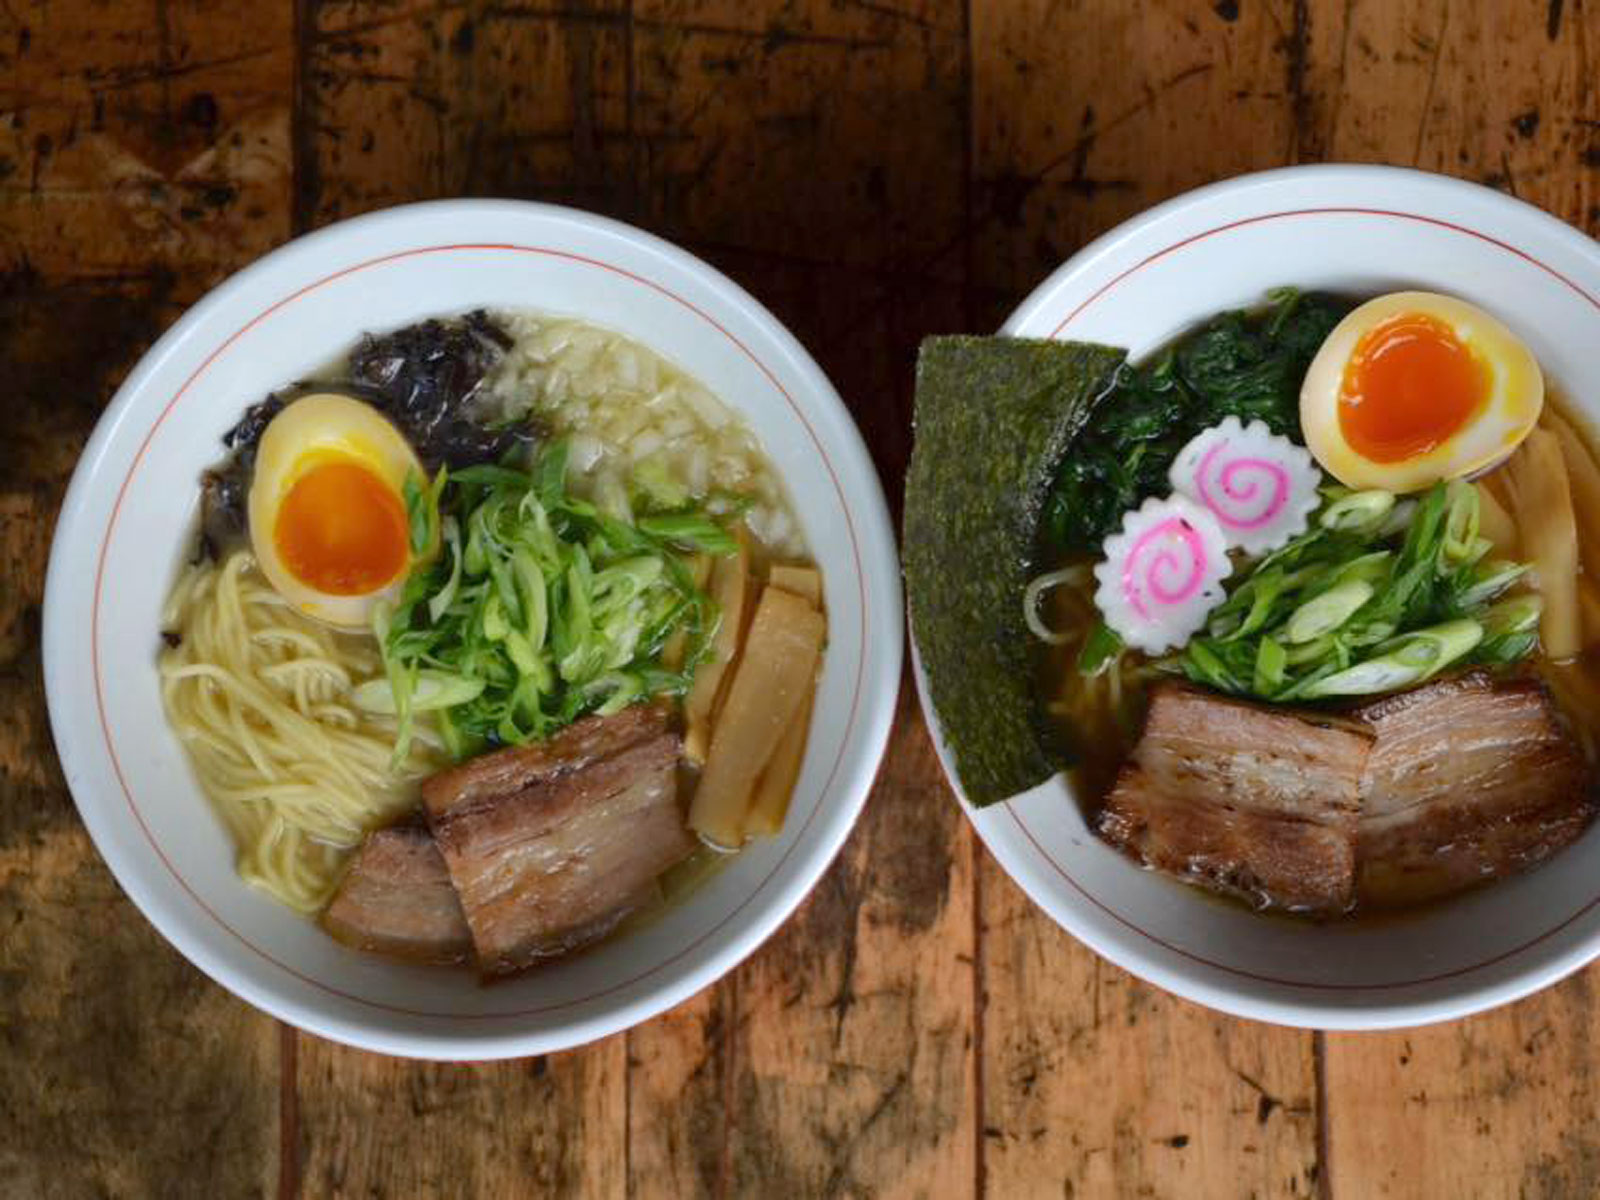 $13 Chicken Paitan ramen at Ramen Takeya